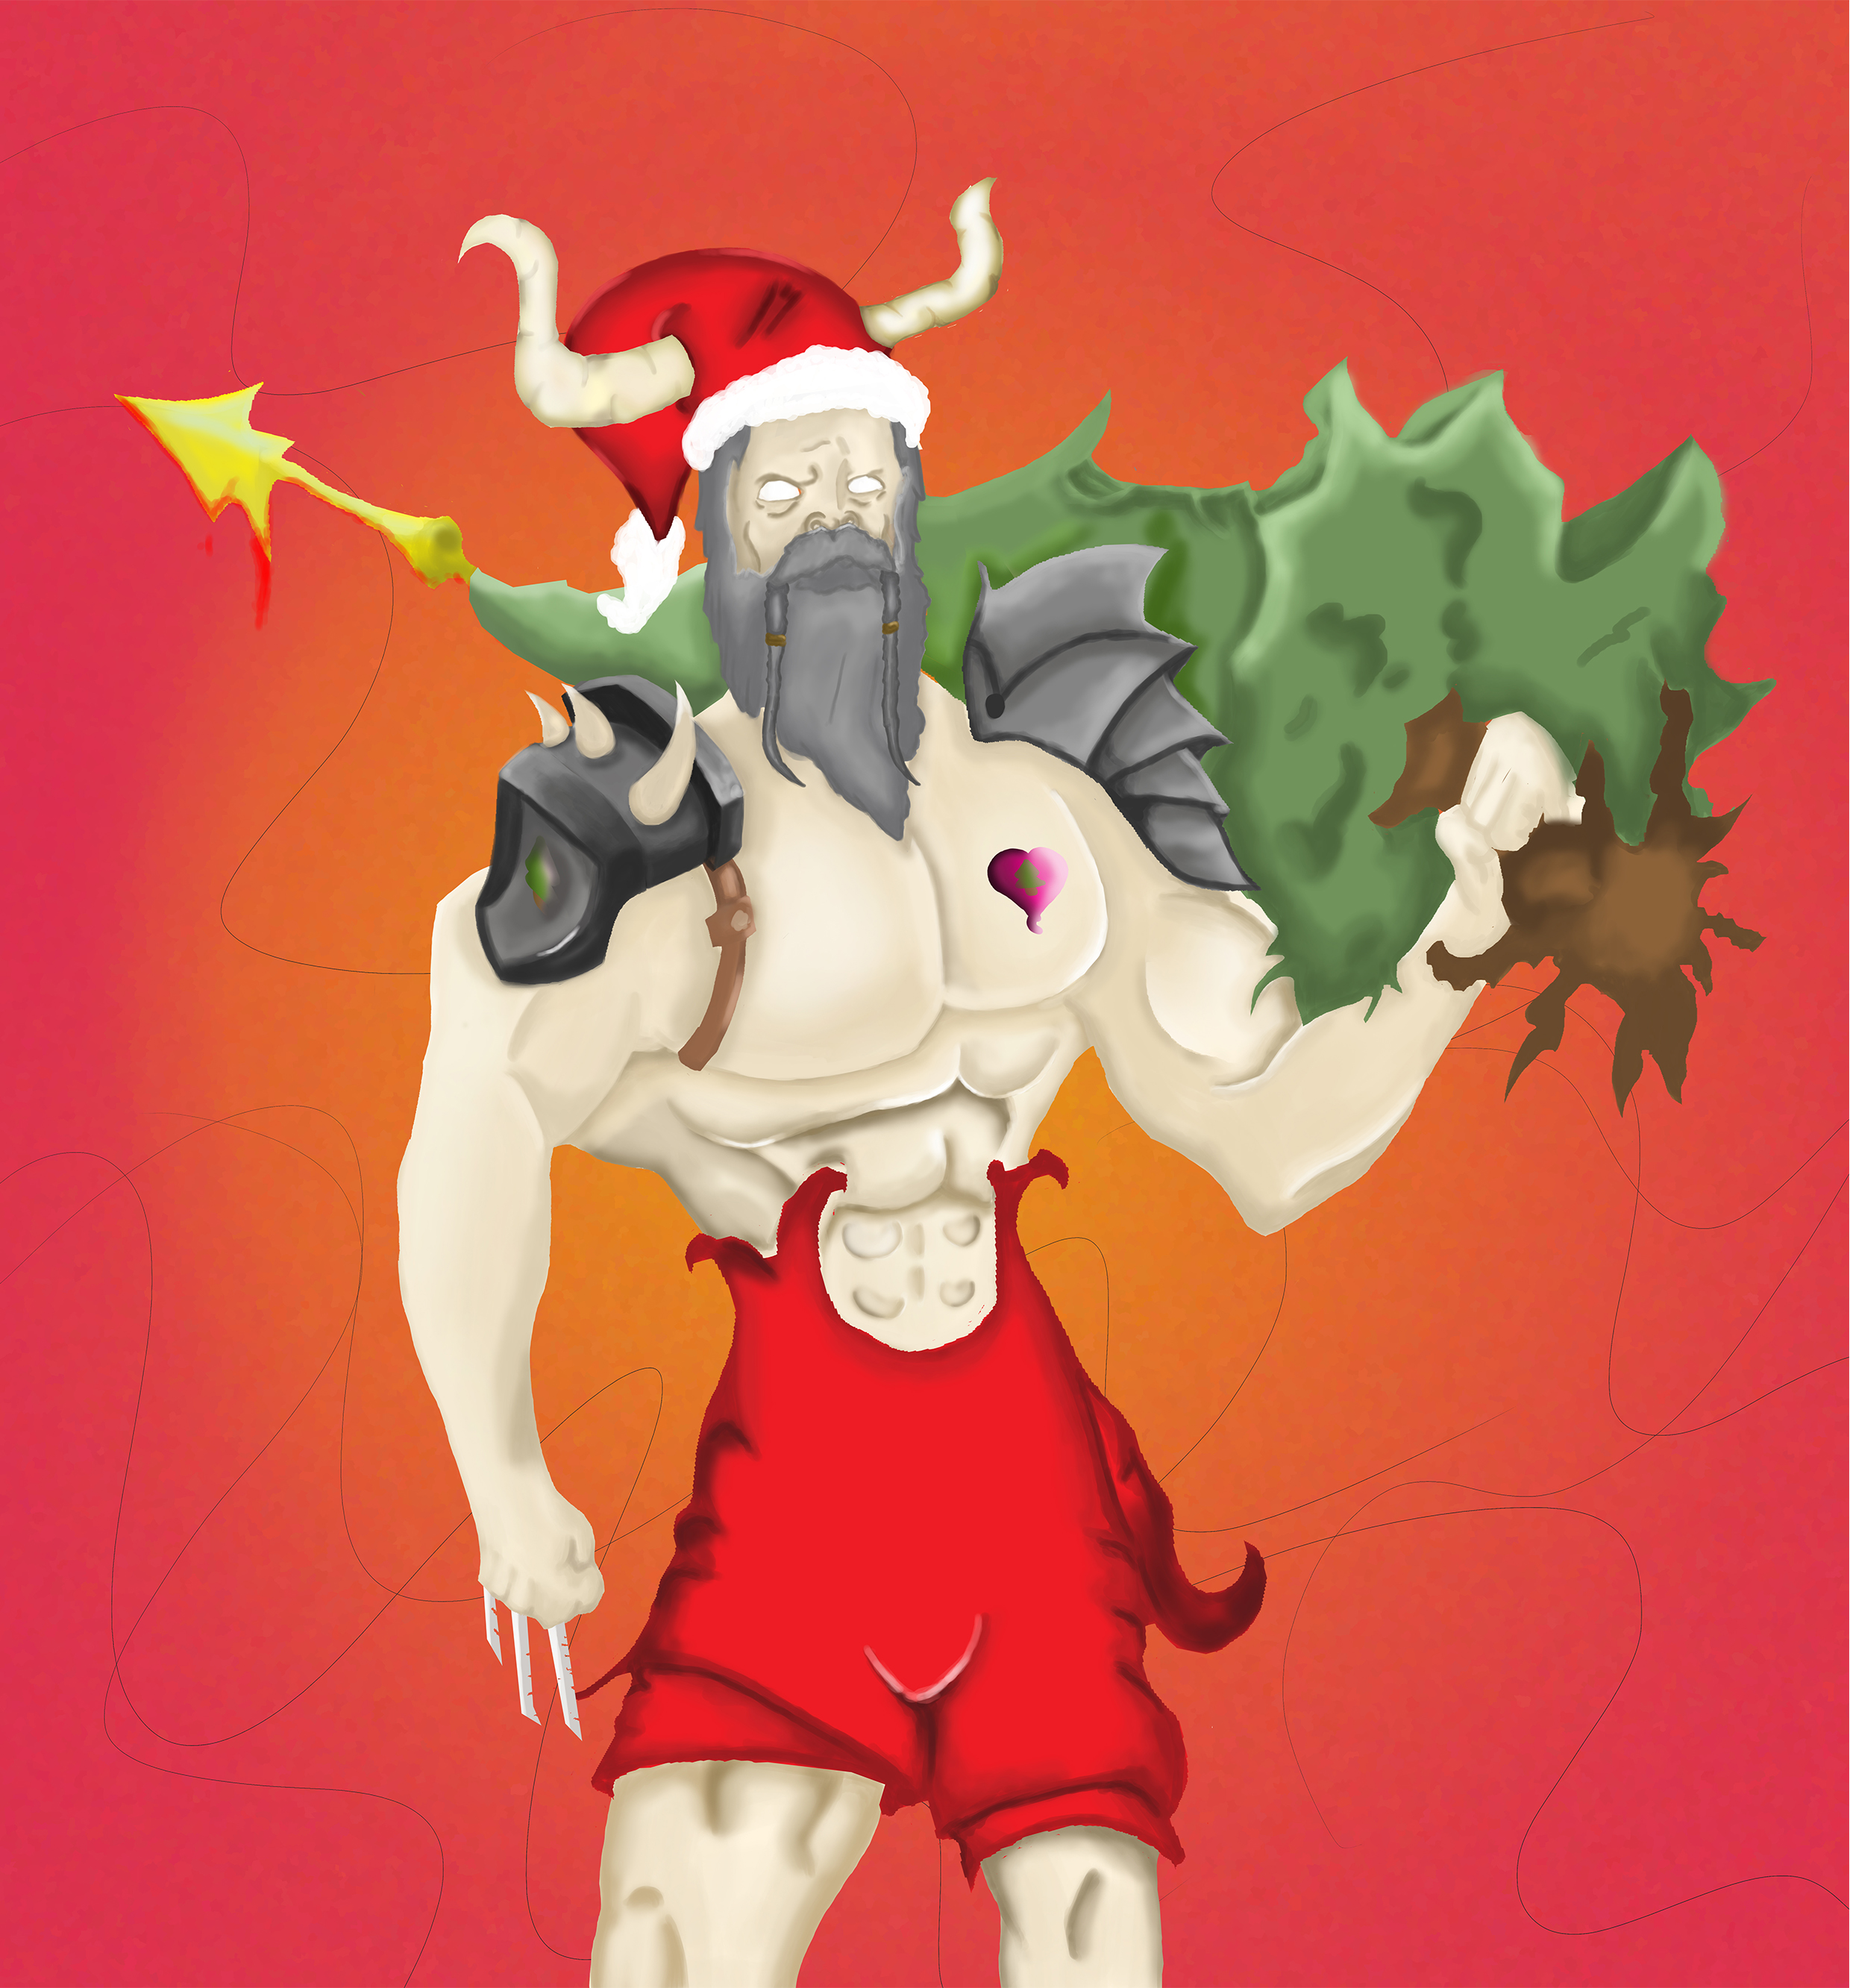 the epic Santa of hanouka..... i mean Christmas!